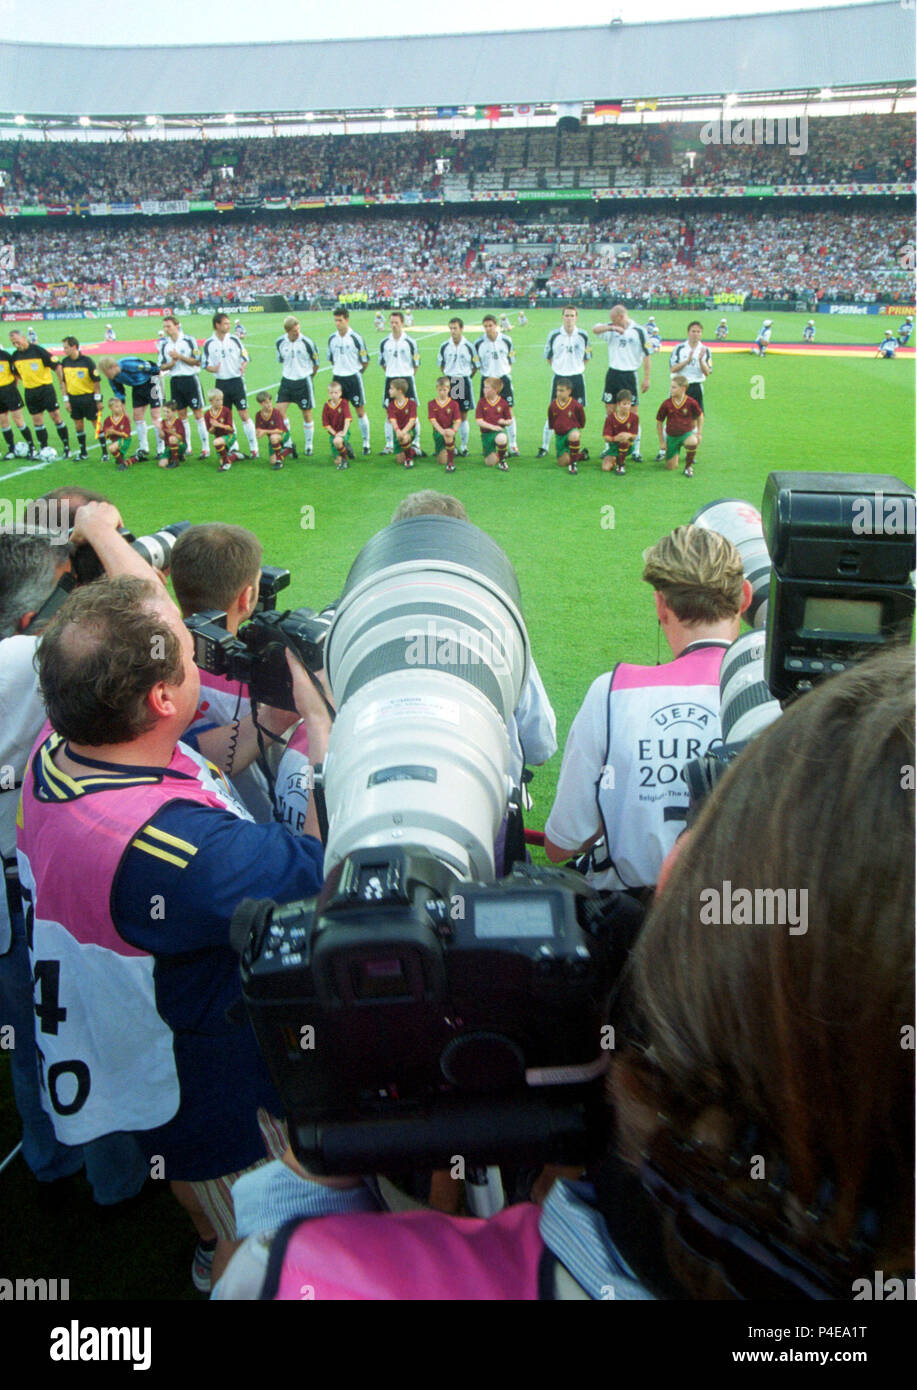 a002266ef6c Feijenoord Stadion, Rotterdam the Netherlands 20.06.2000, Football EURO 2000  Championship, Portugal vs. Germany 3:0 --- sports photographers point their  ...